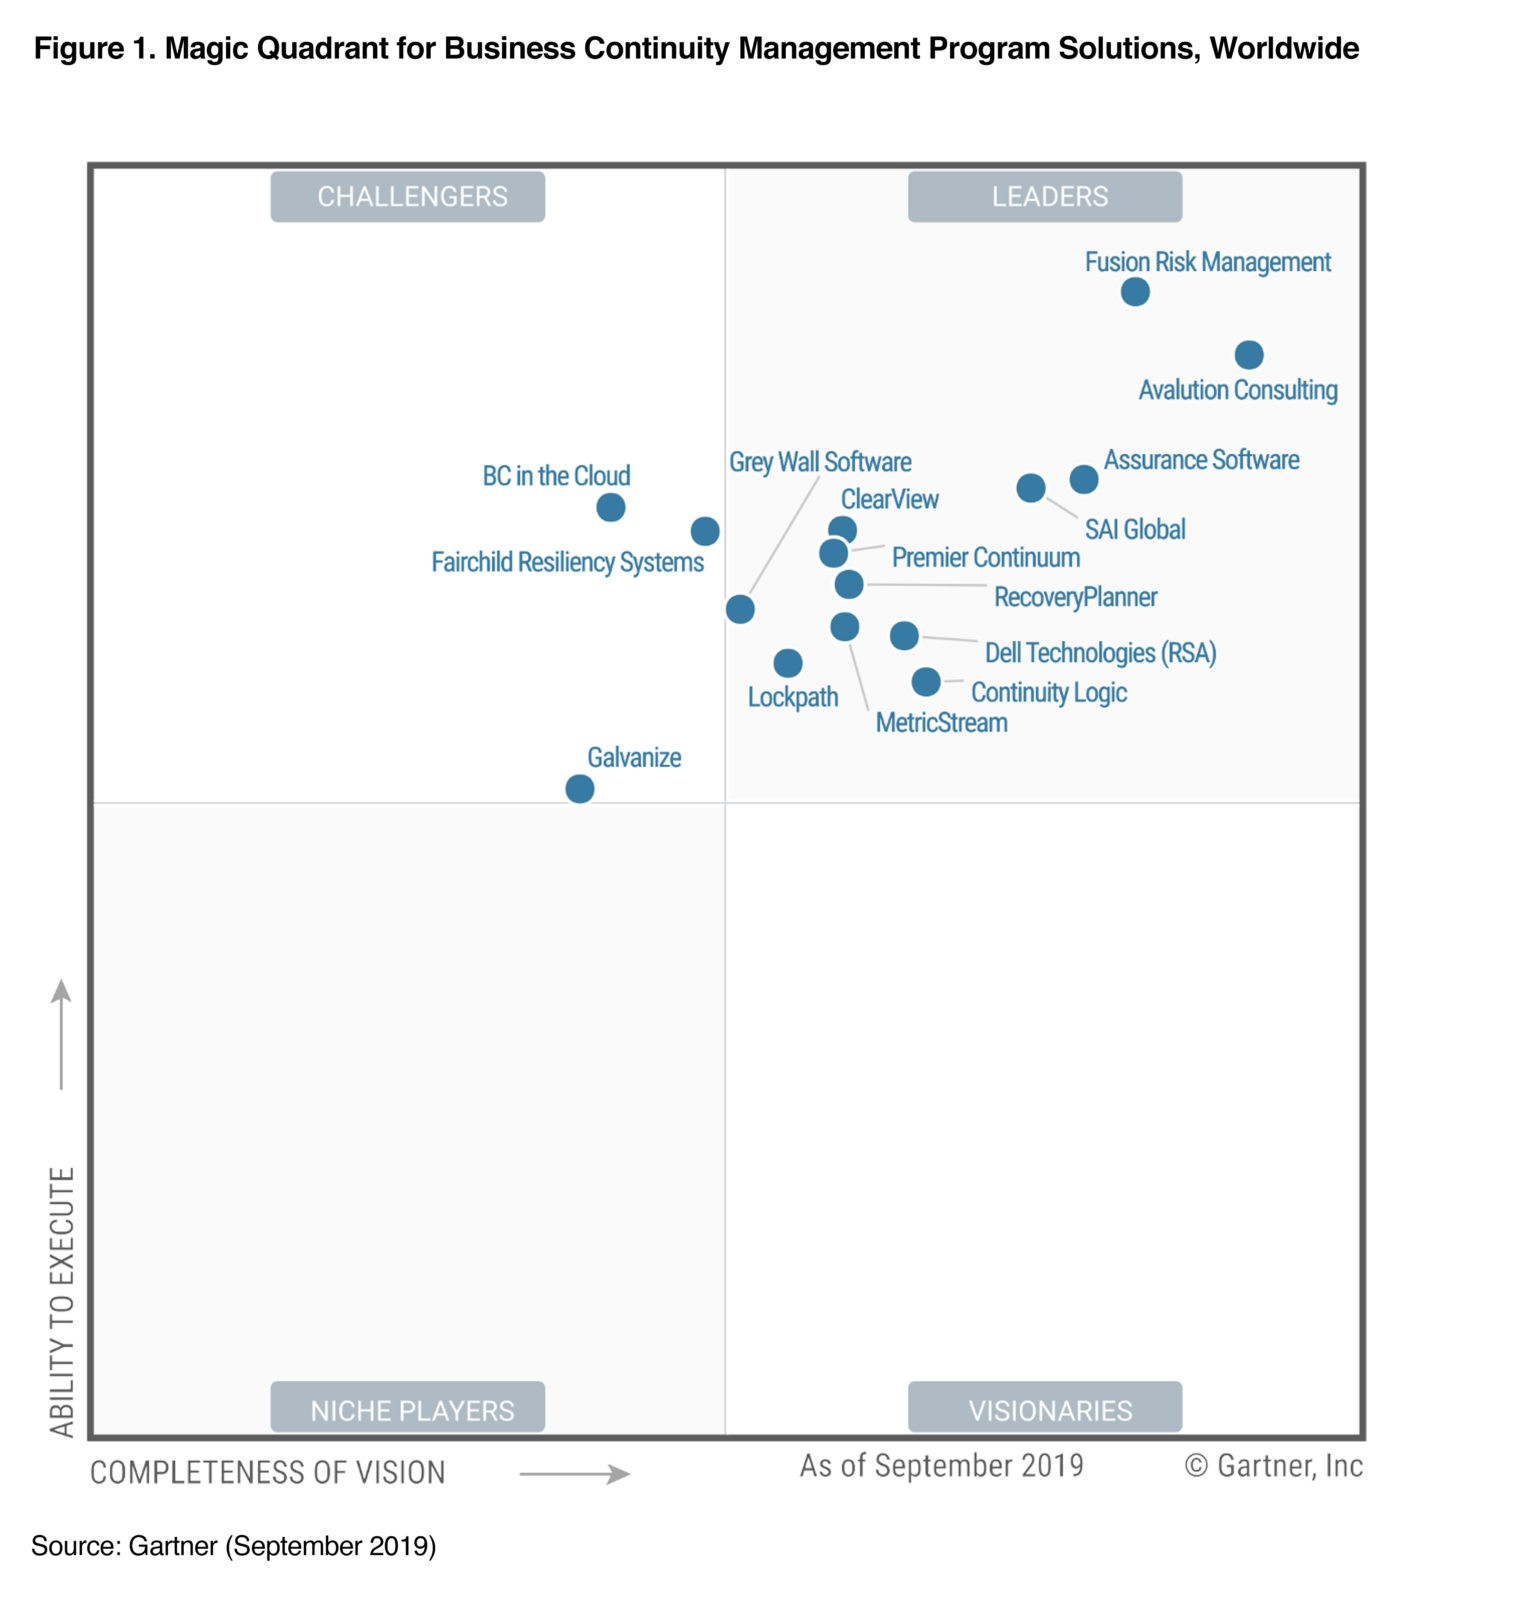 2019 Magic Quadrant leader for Business Continuity Management Program Solutions, Worldwide